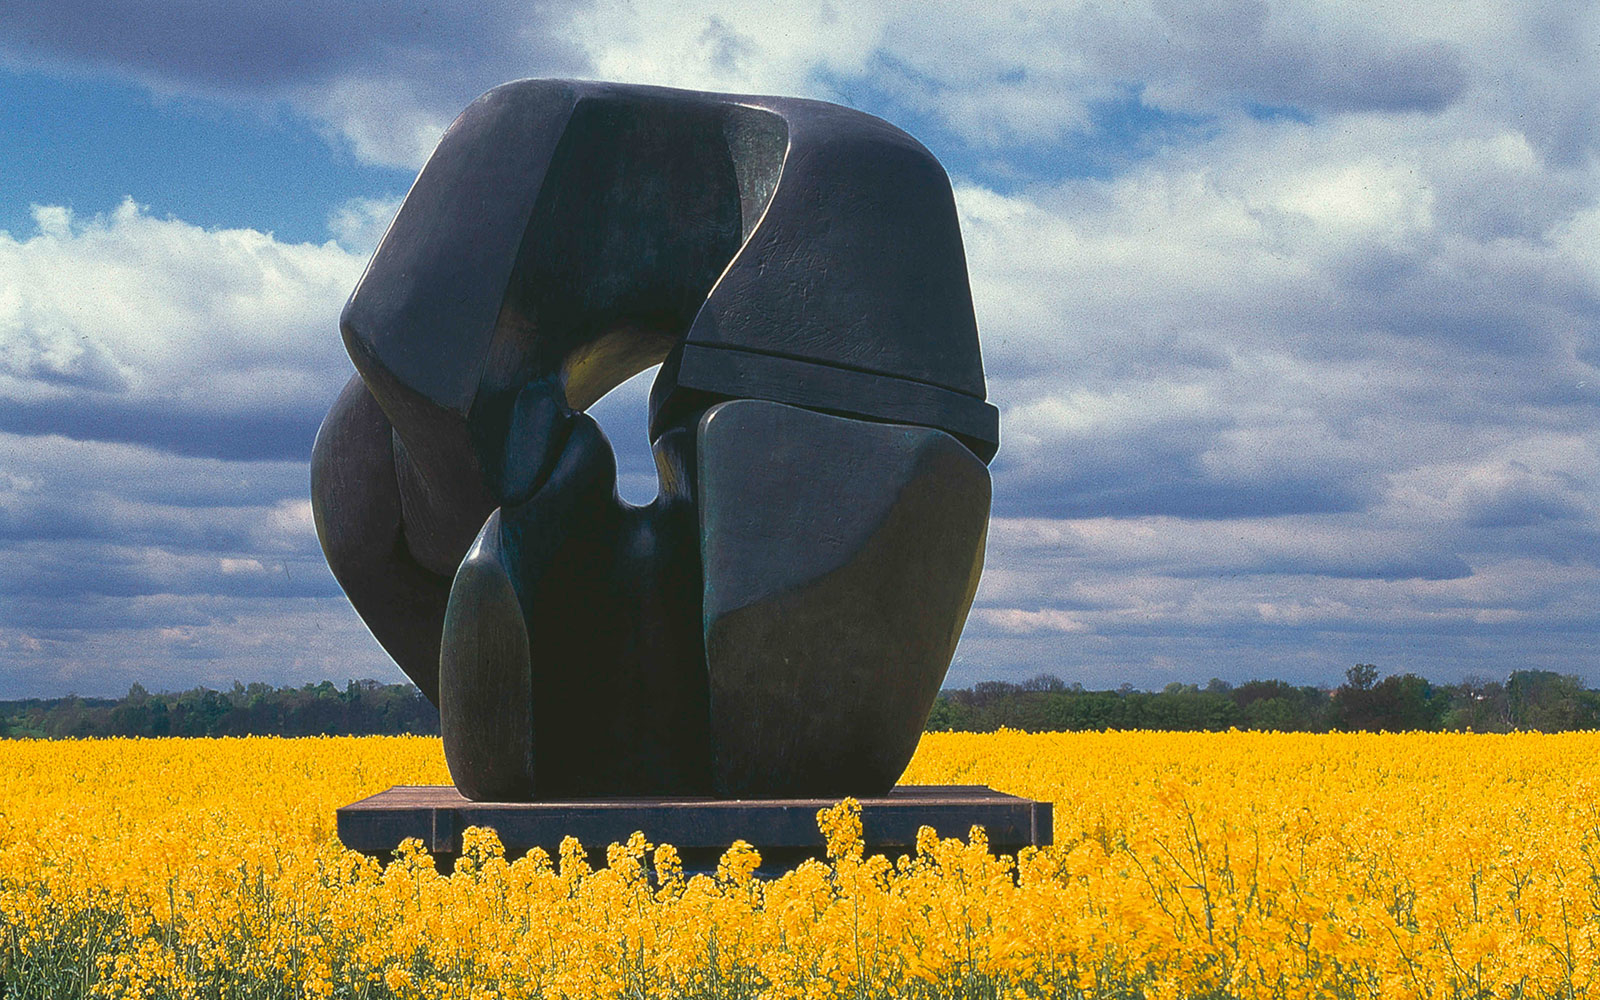 Henry Moore Sculptures Come to Burgos, Spain